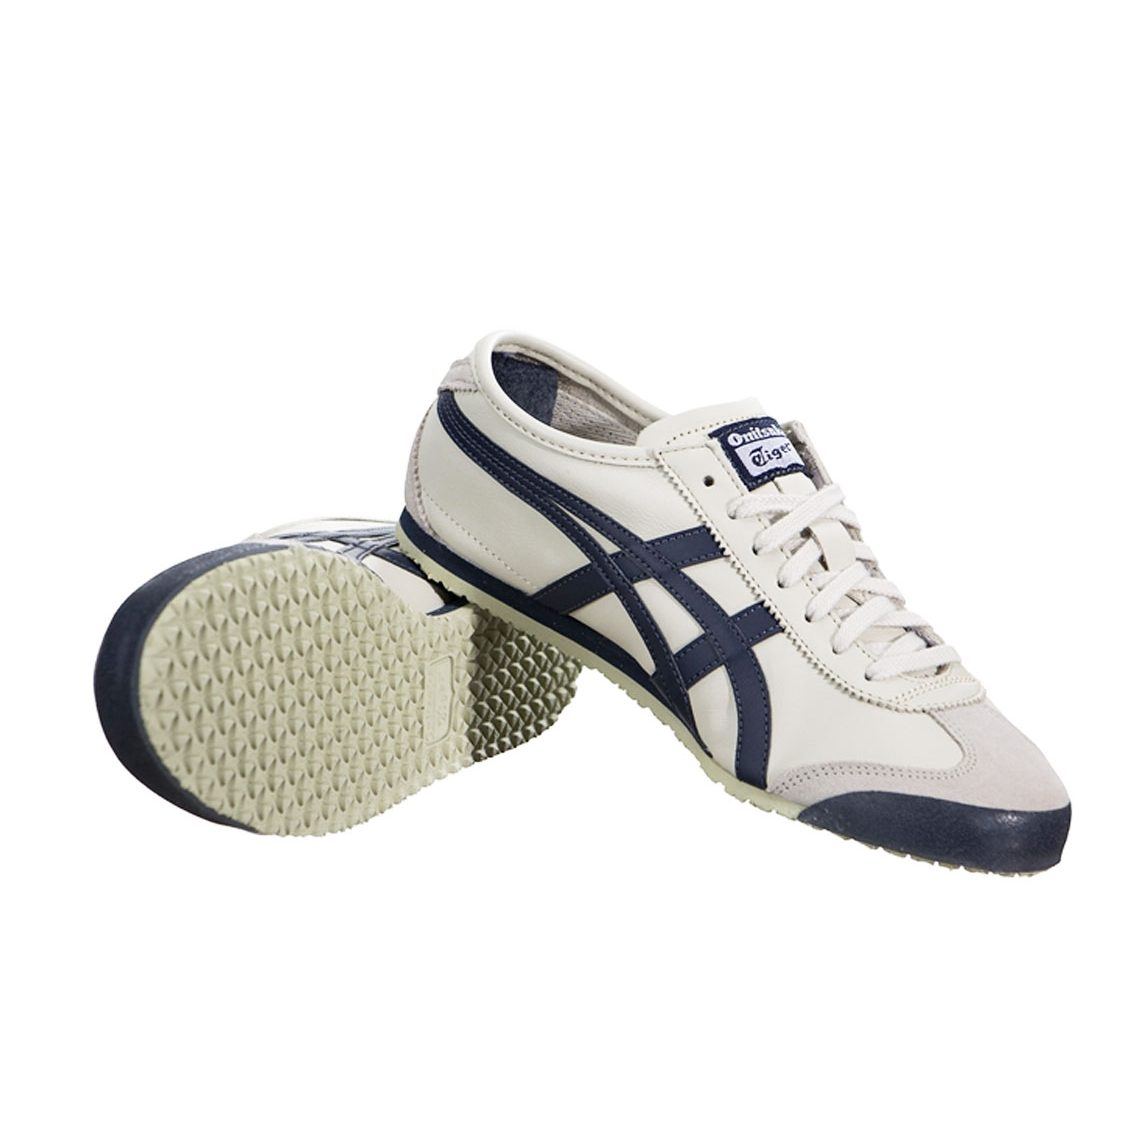 on sale be521 635bf Onitsuka Tiger Mexico 66 Birch/Ink/Latte Women's